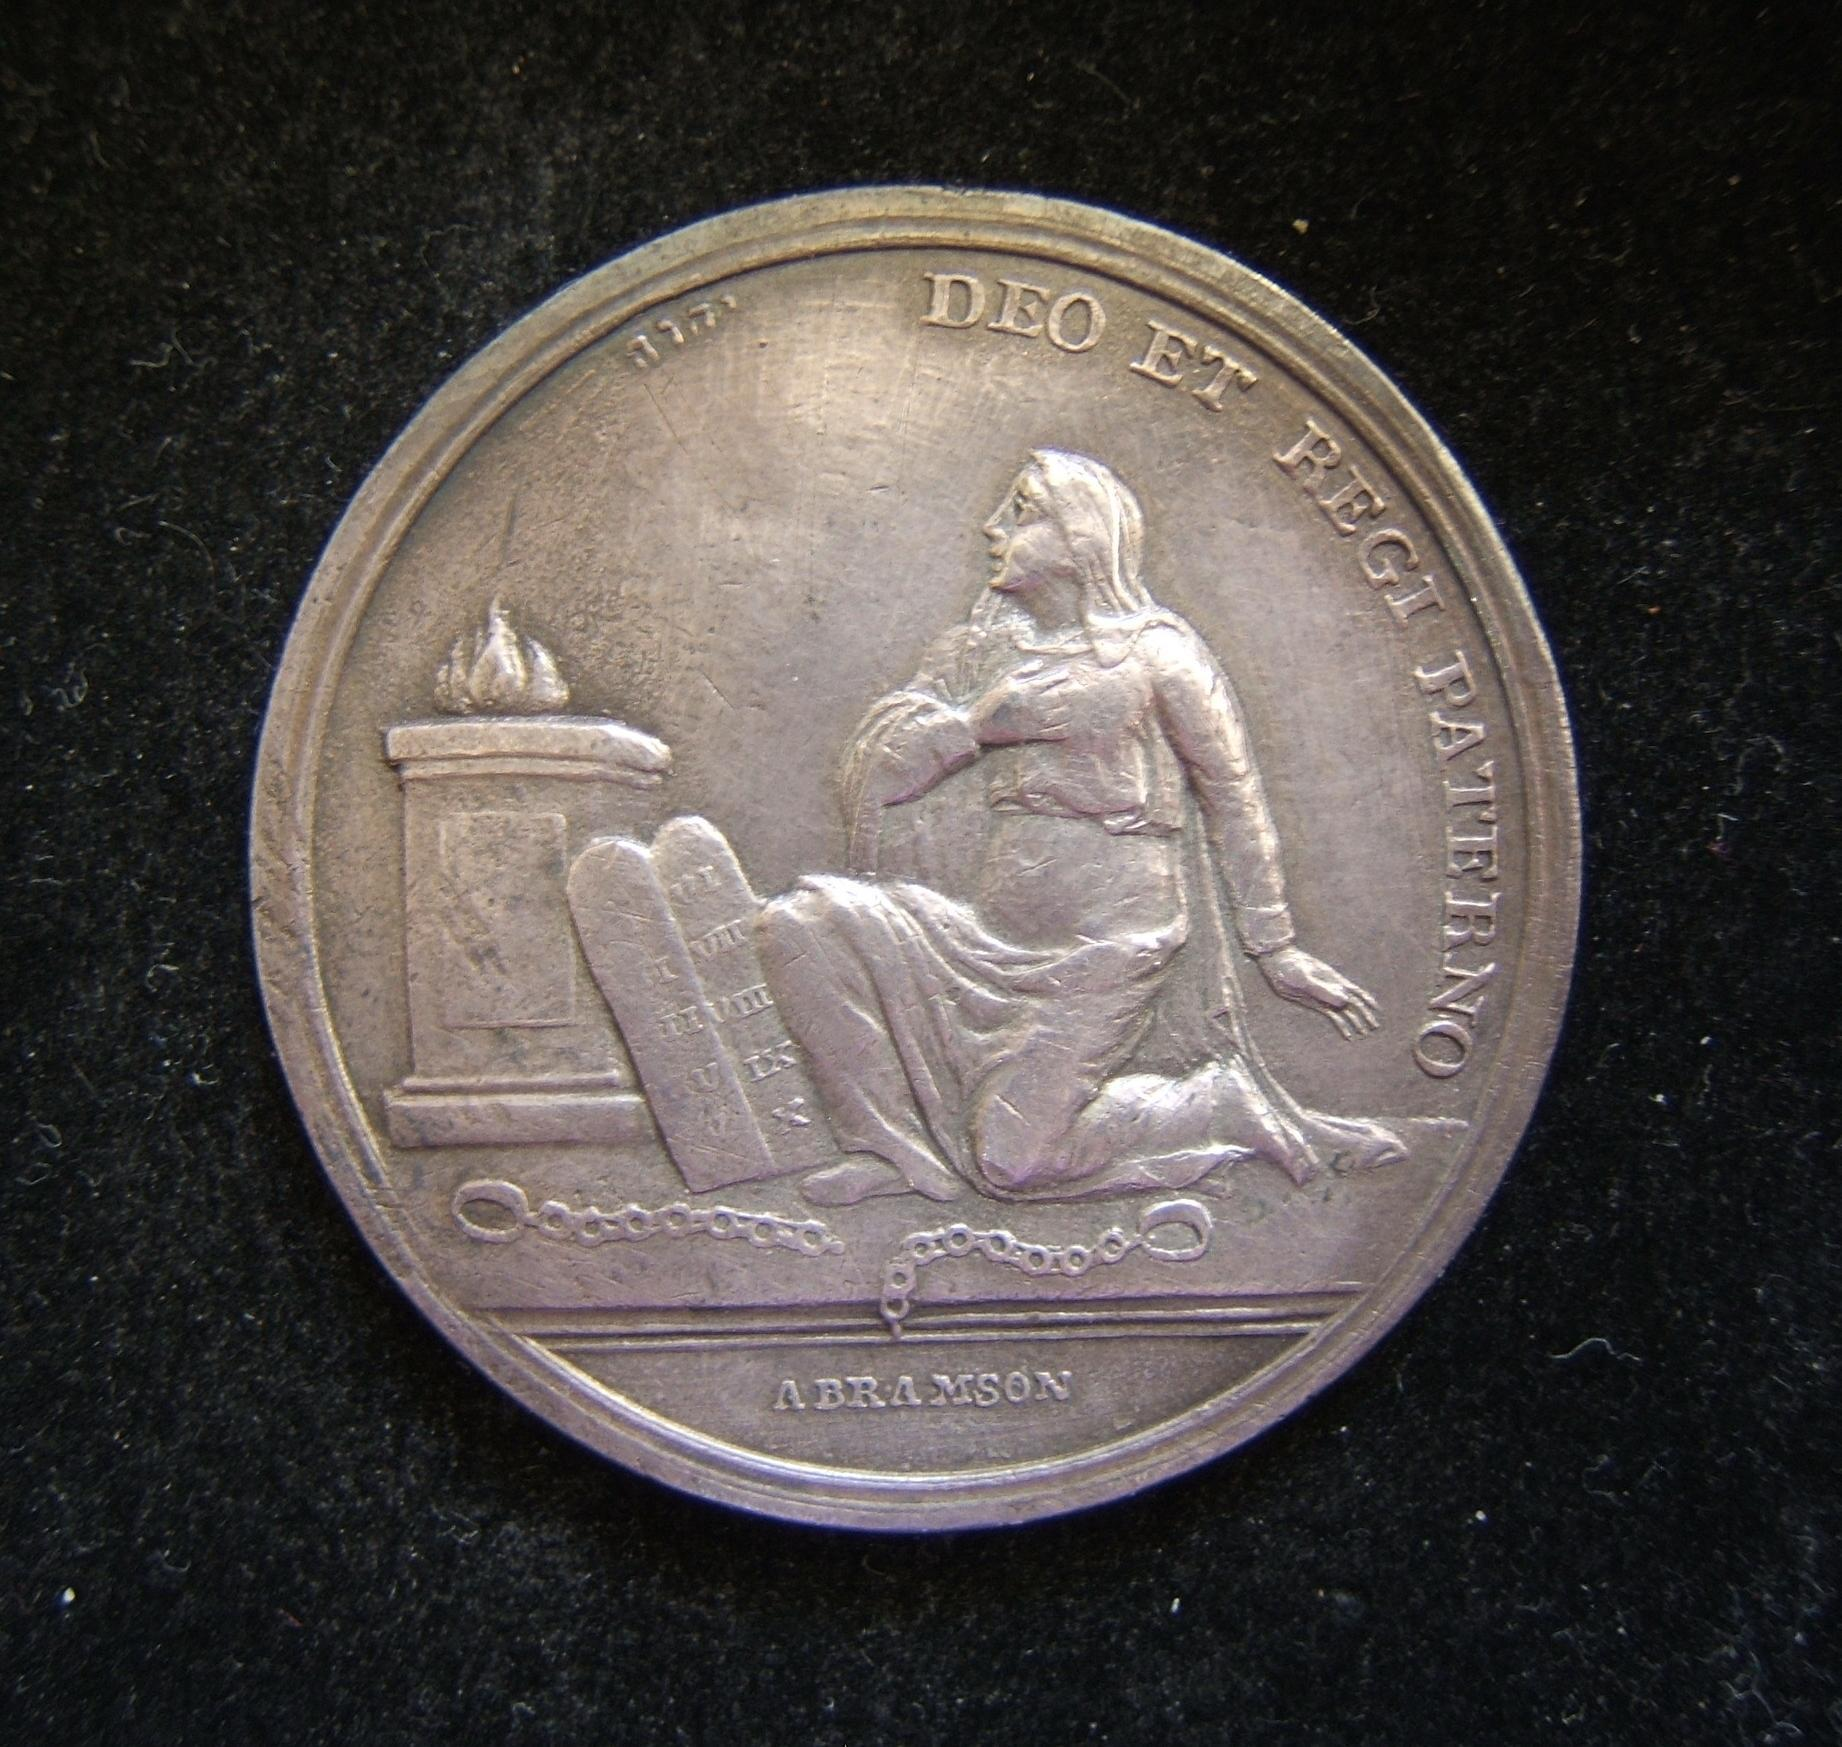 Germany > Westfalia: silver medal Emancipation of the Jews of Westfalia by Jerome Bonaparte, 1808; by Abraham Abramson; size: 42.5mm; weight: 25.8g. Obv.: 'Judaism' freed from c